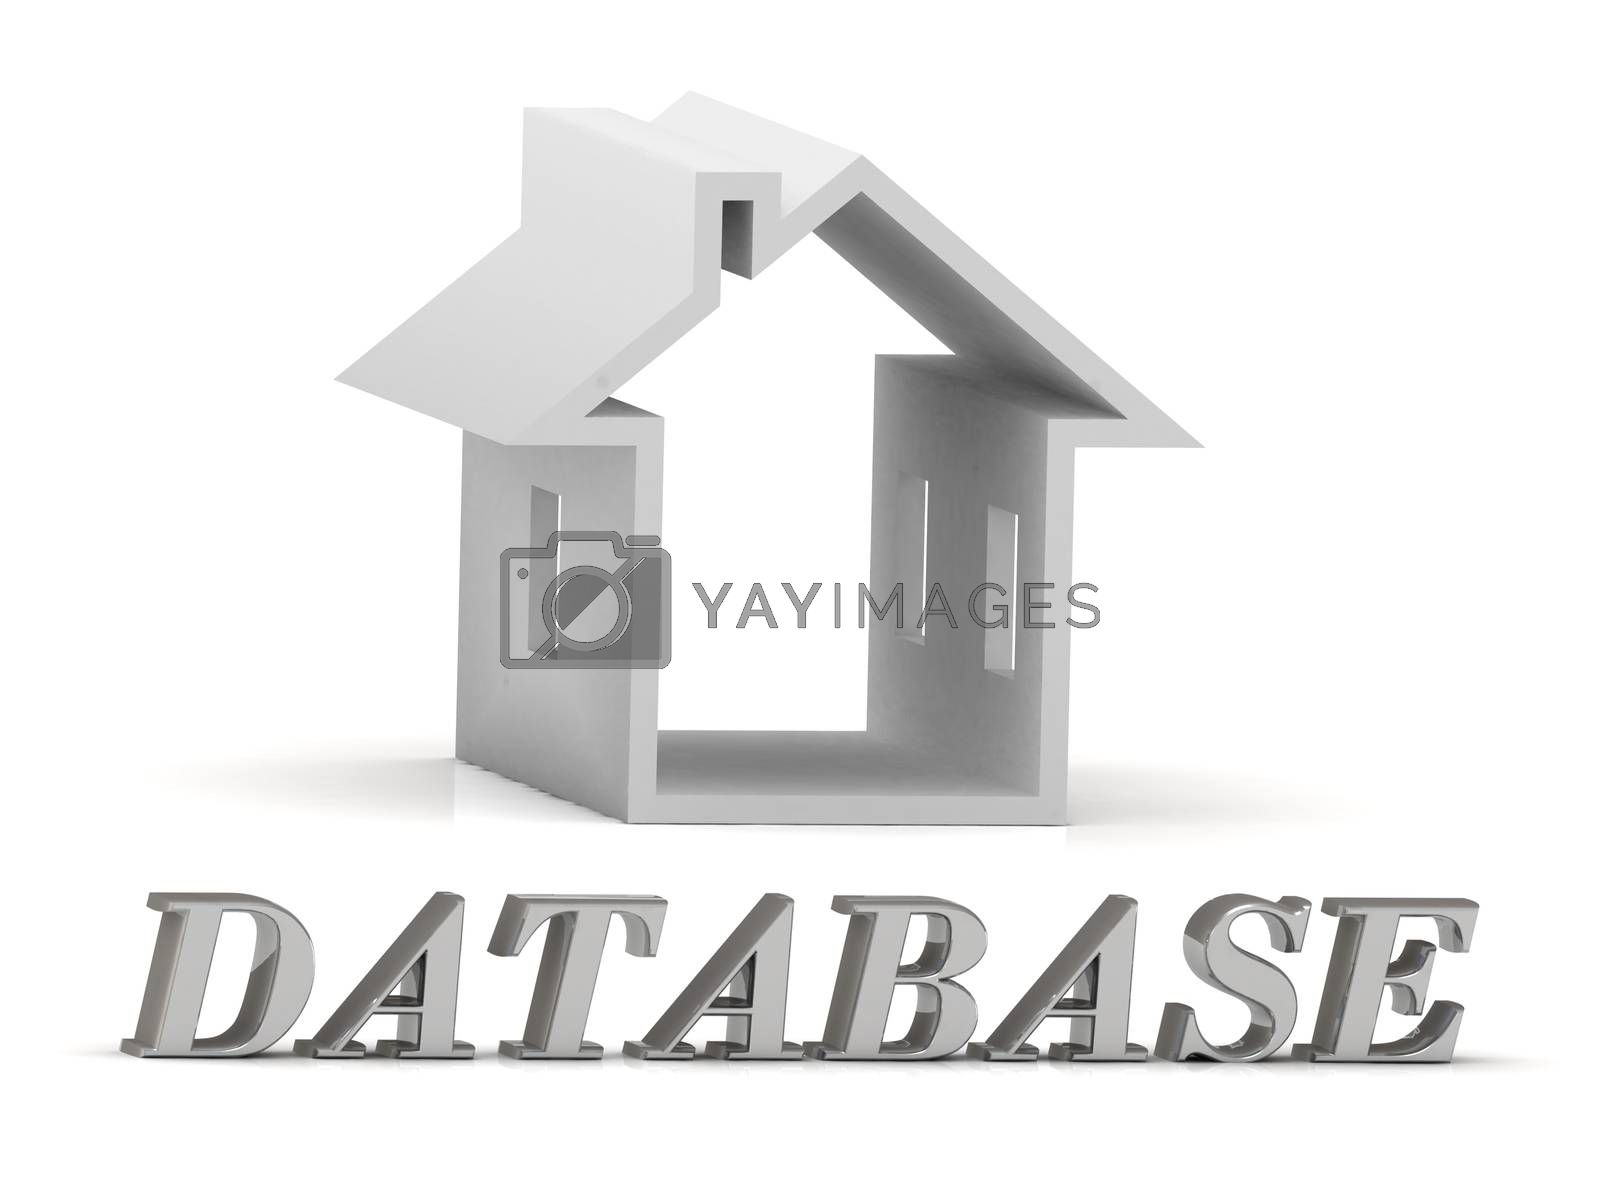 DATABASE- inscription of silver letters and white house on white background